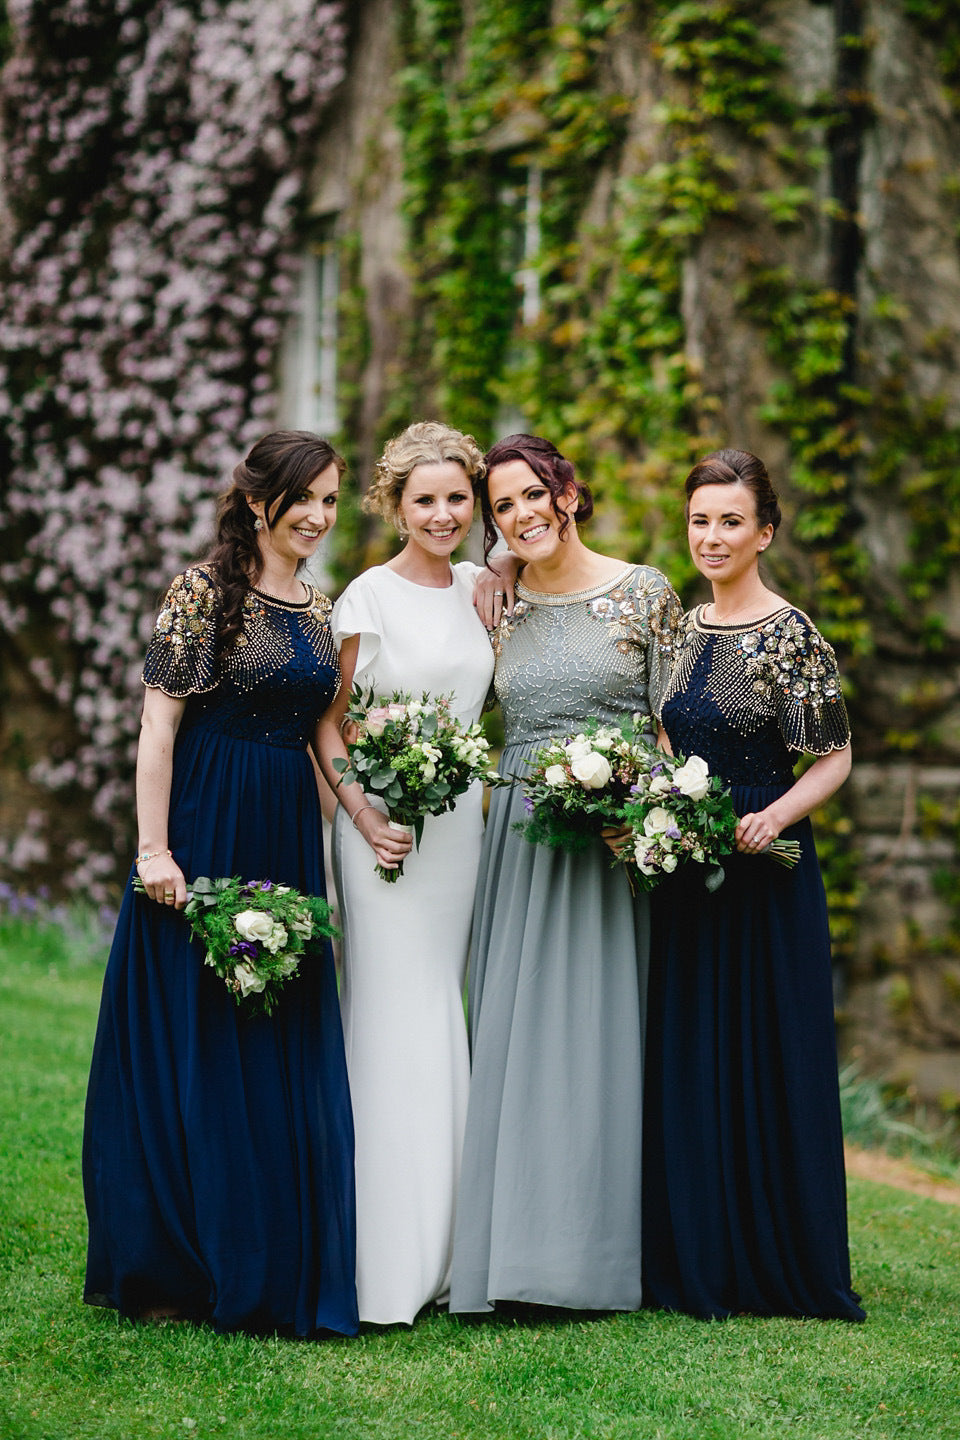 Gorgeous detailed bridesmaids dresses